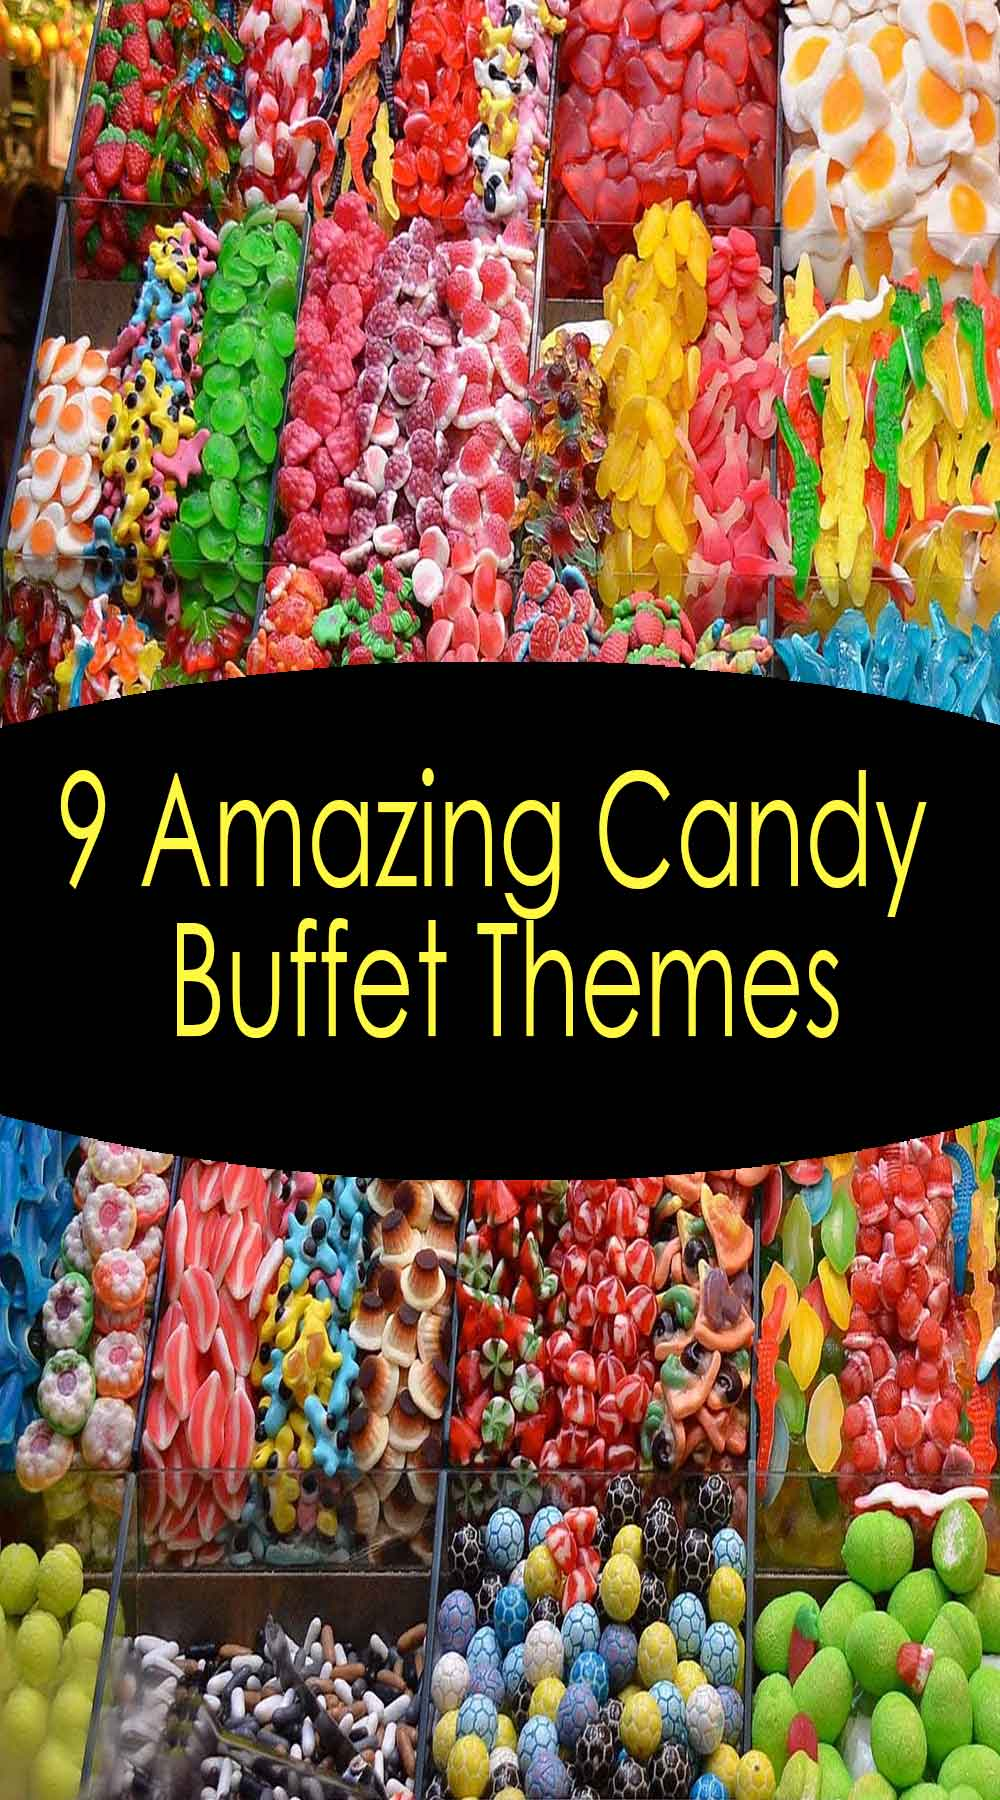 9 Amazing Candy Buffet Themes